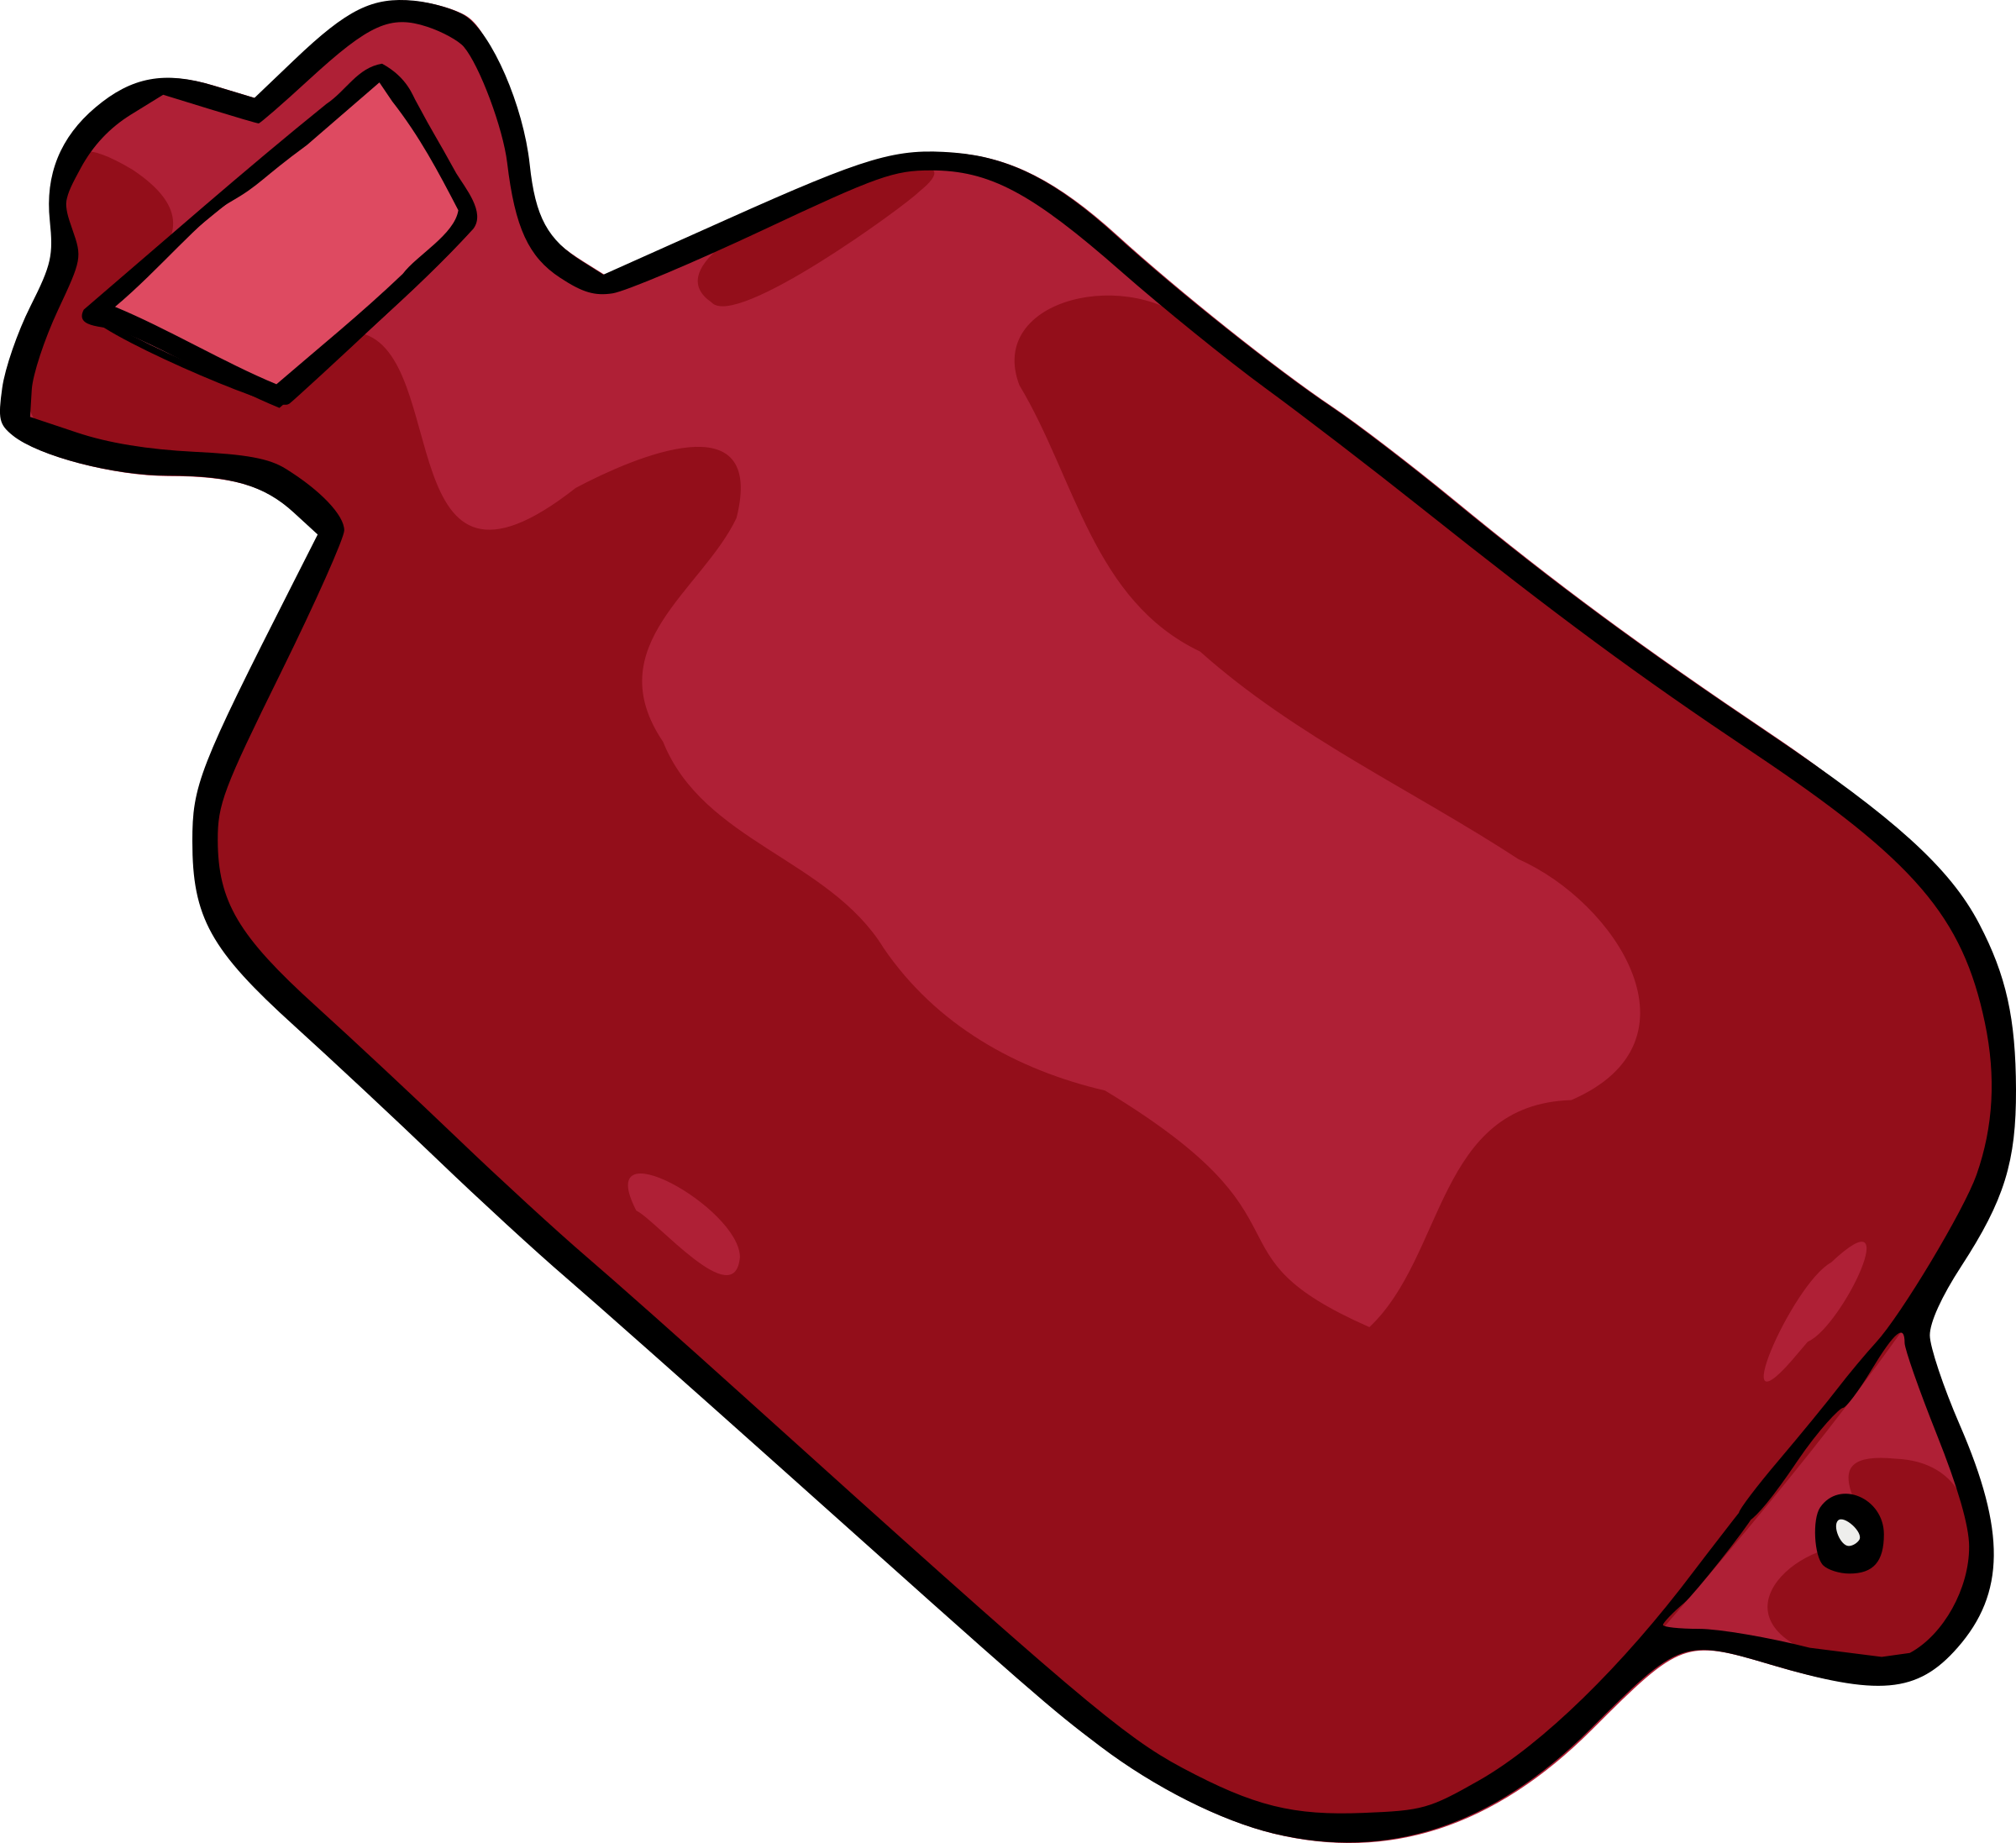 Hot water bottle big. Heat clipart cartoon